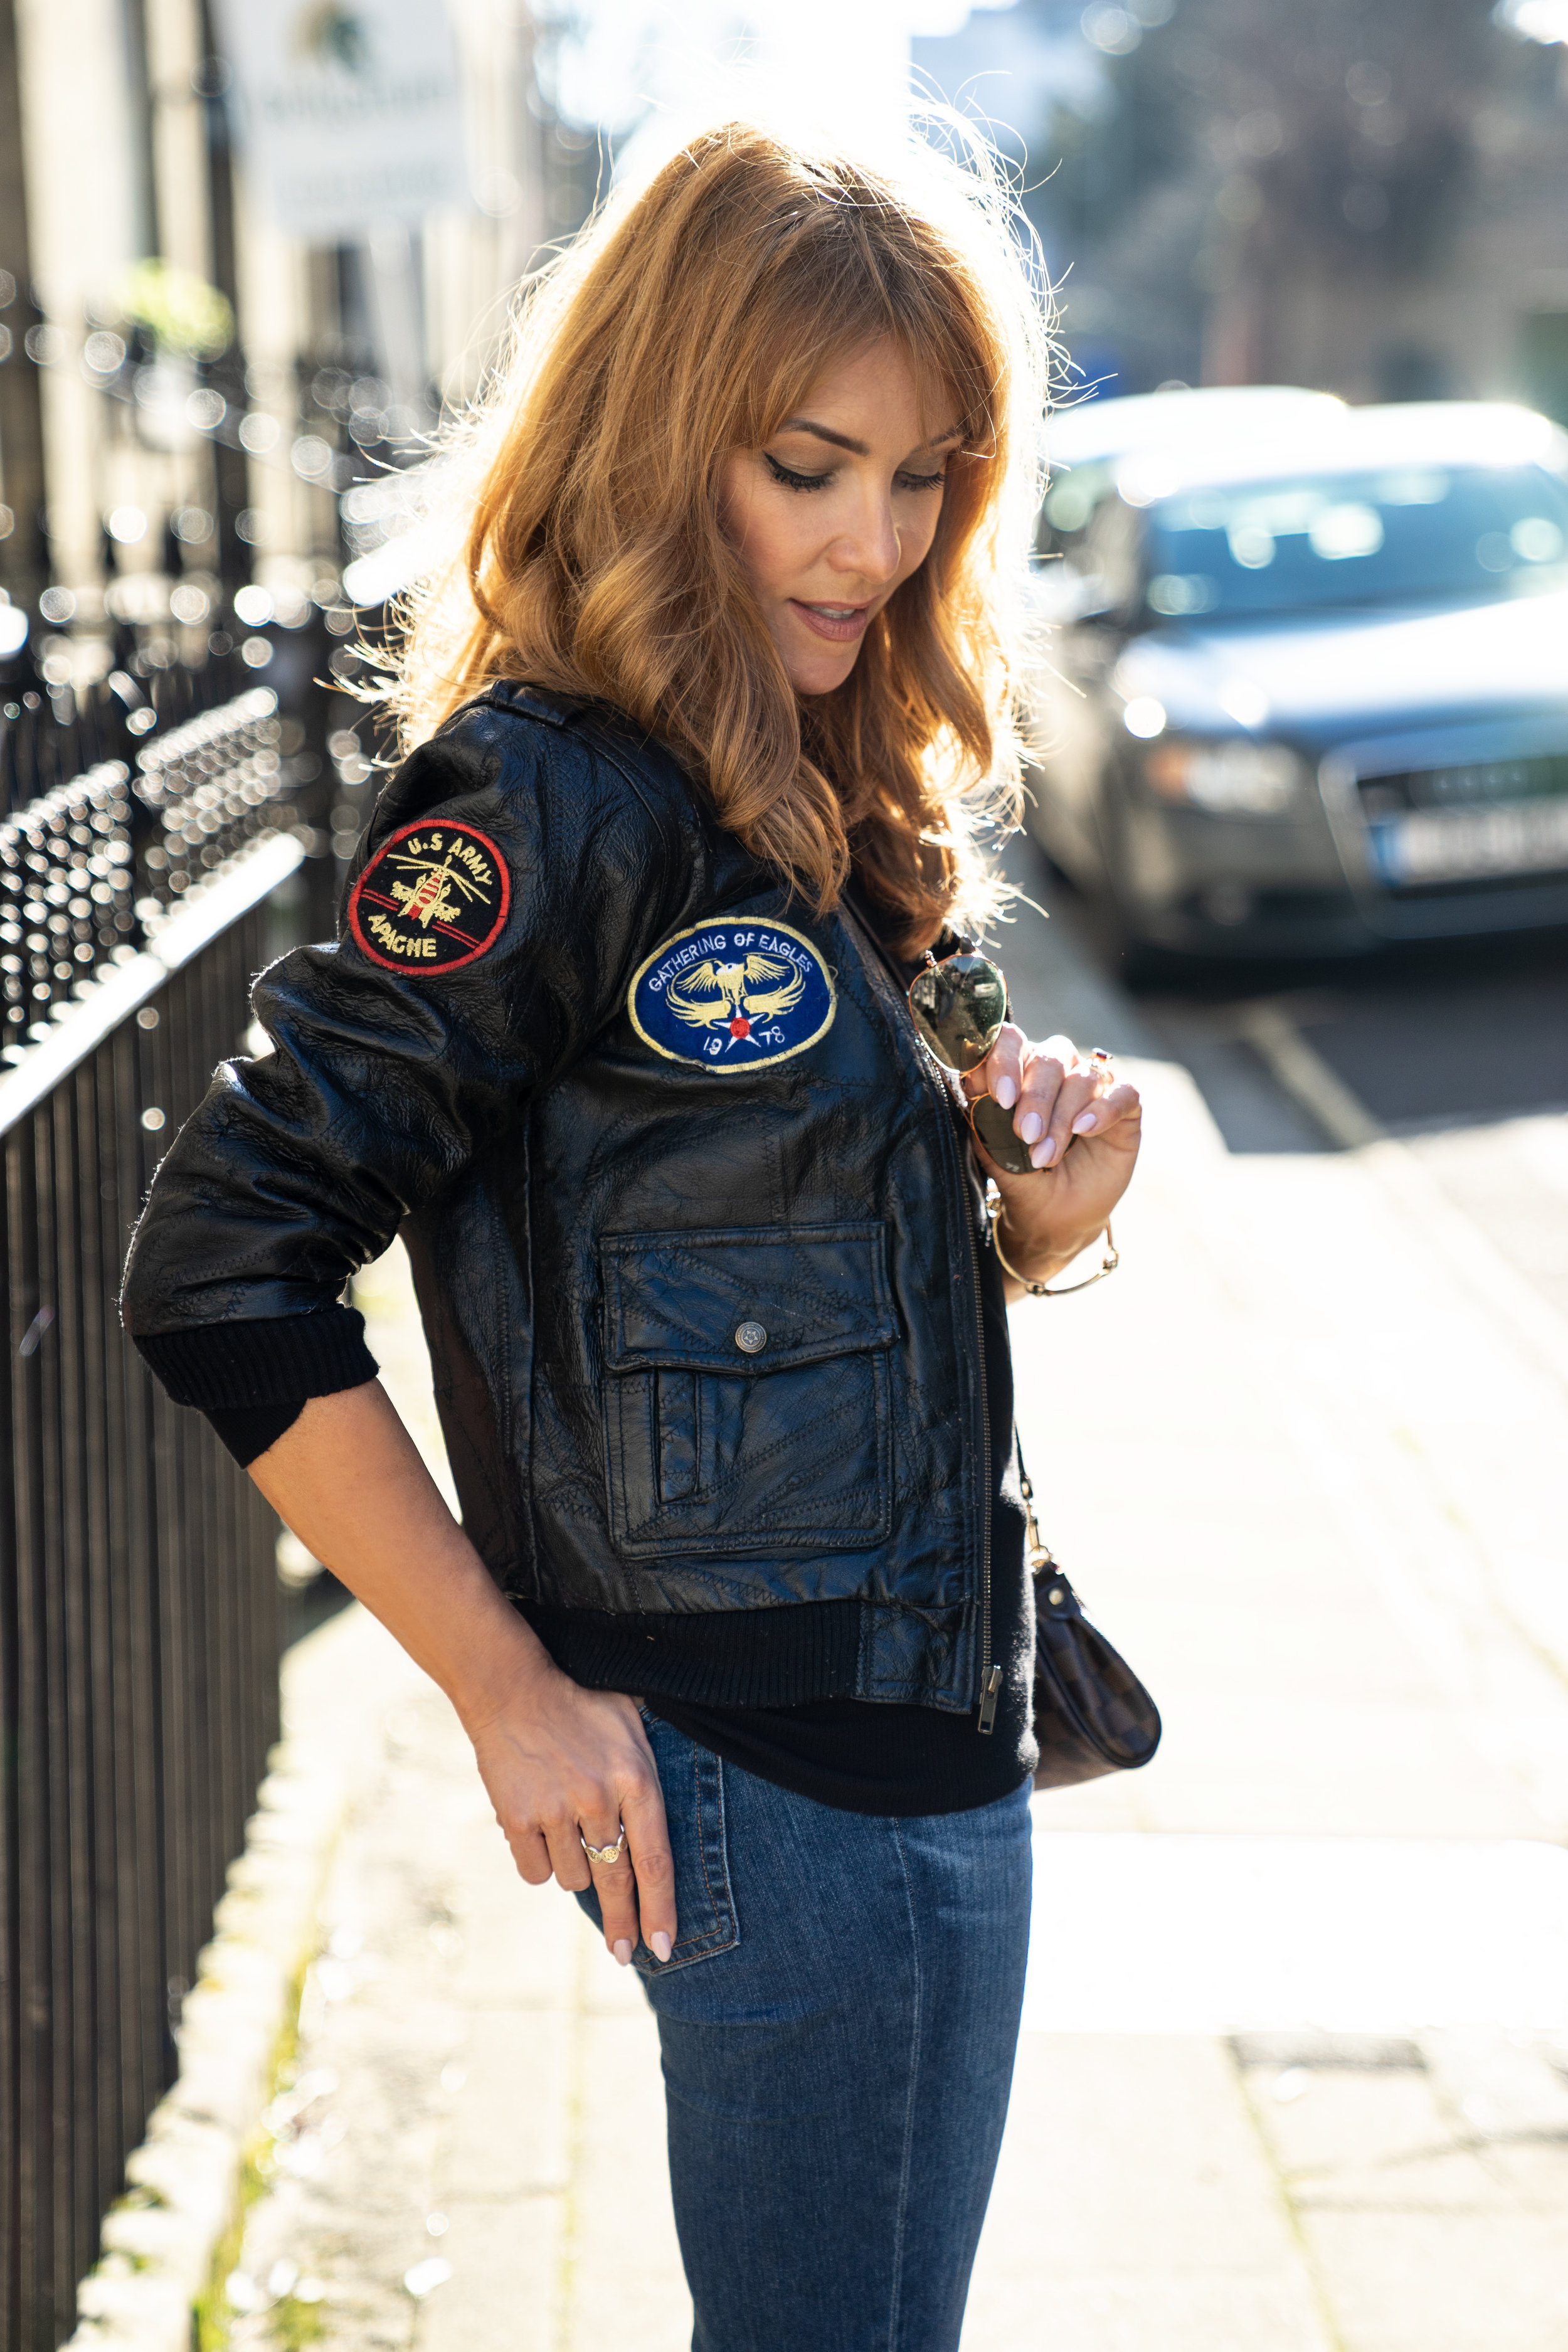 The Style Bible - Vintage Leather Jacket